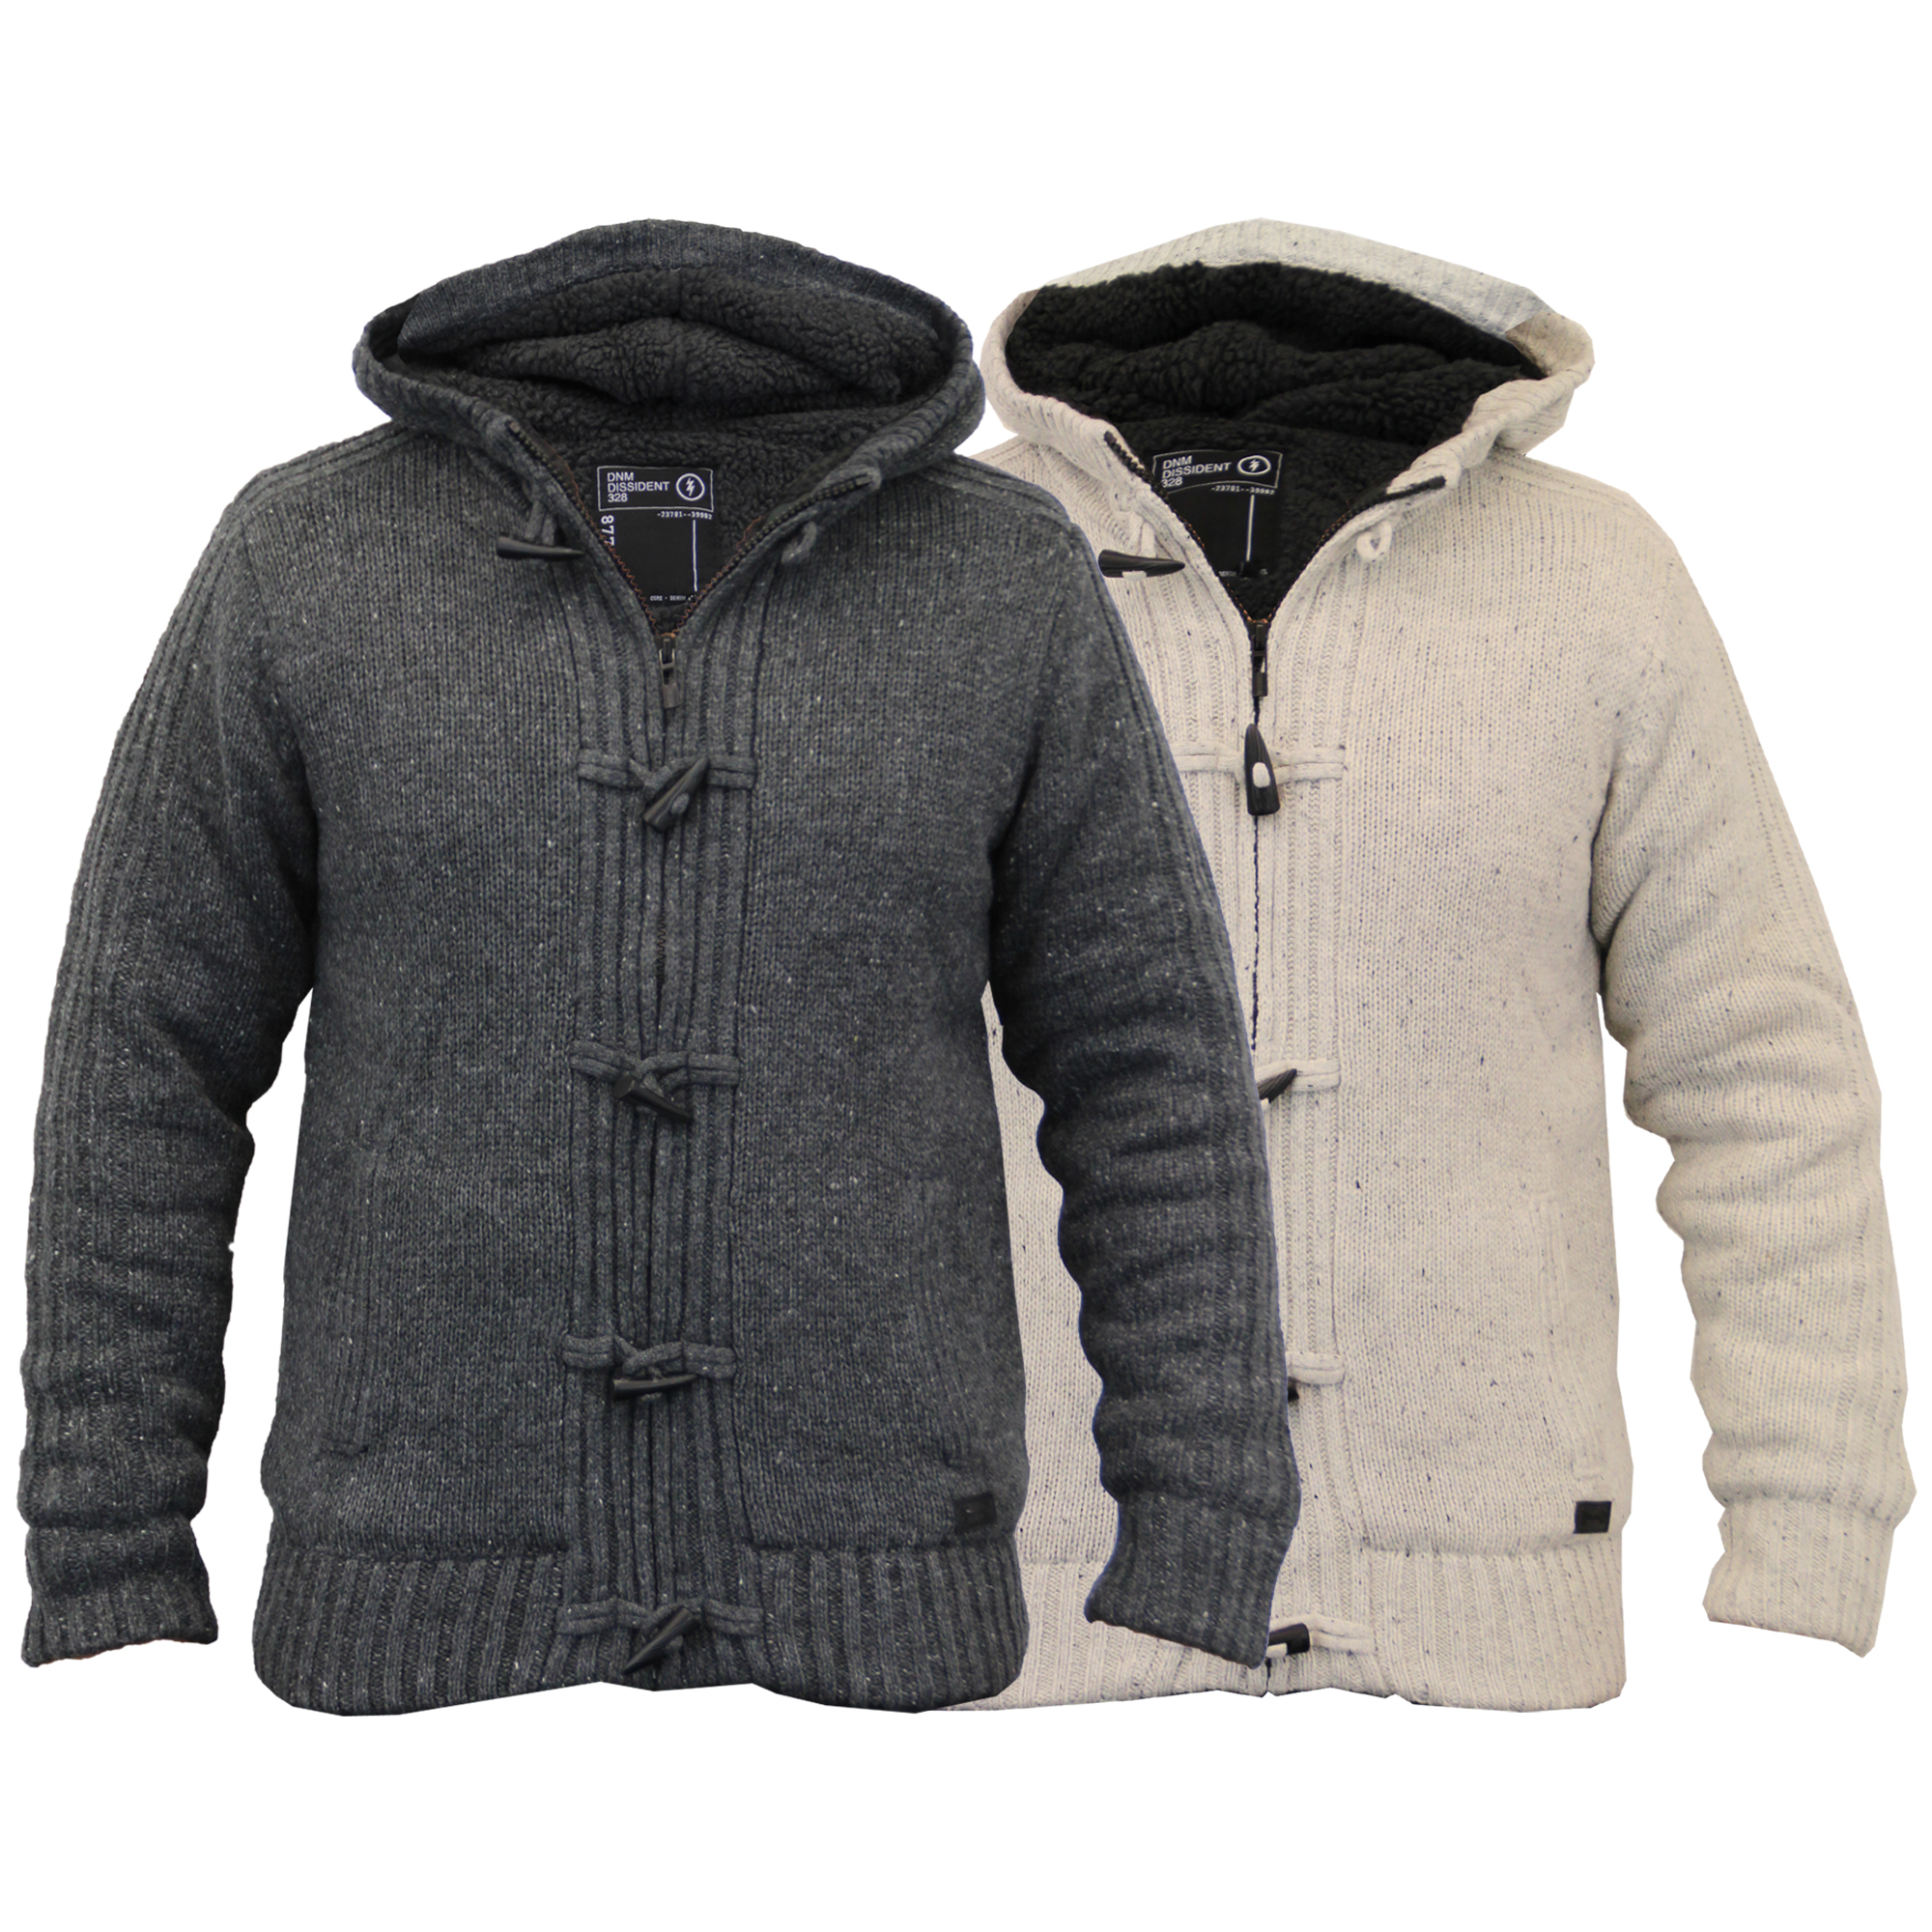 Mens Knitted Sherpa Fleece Jacket Hooded Toggle Winter Cardigan By ...